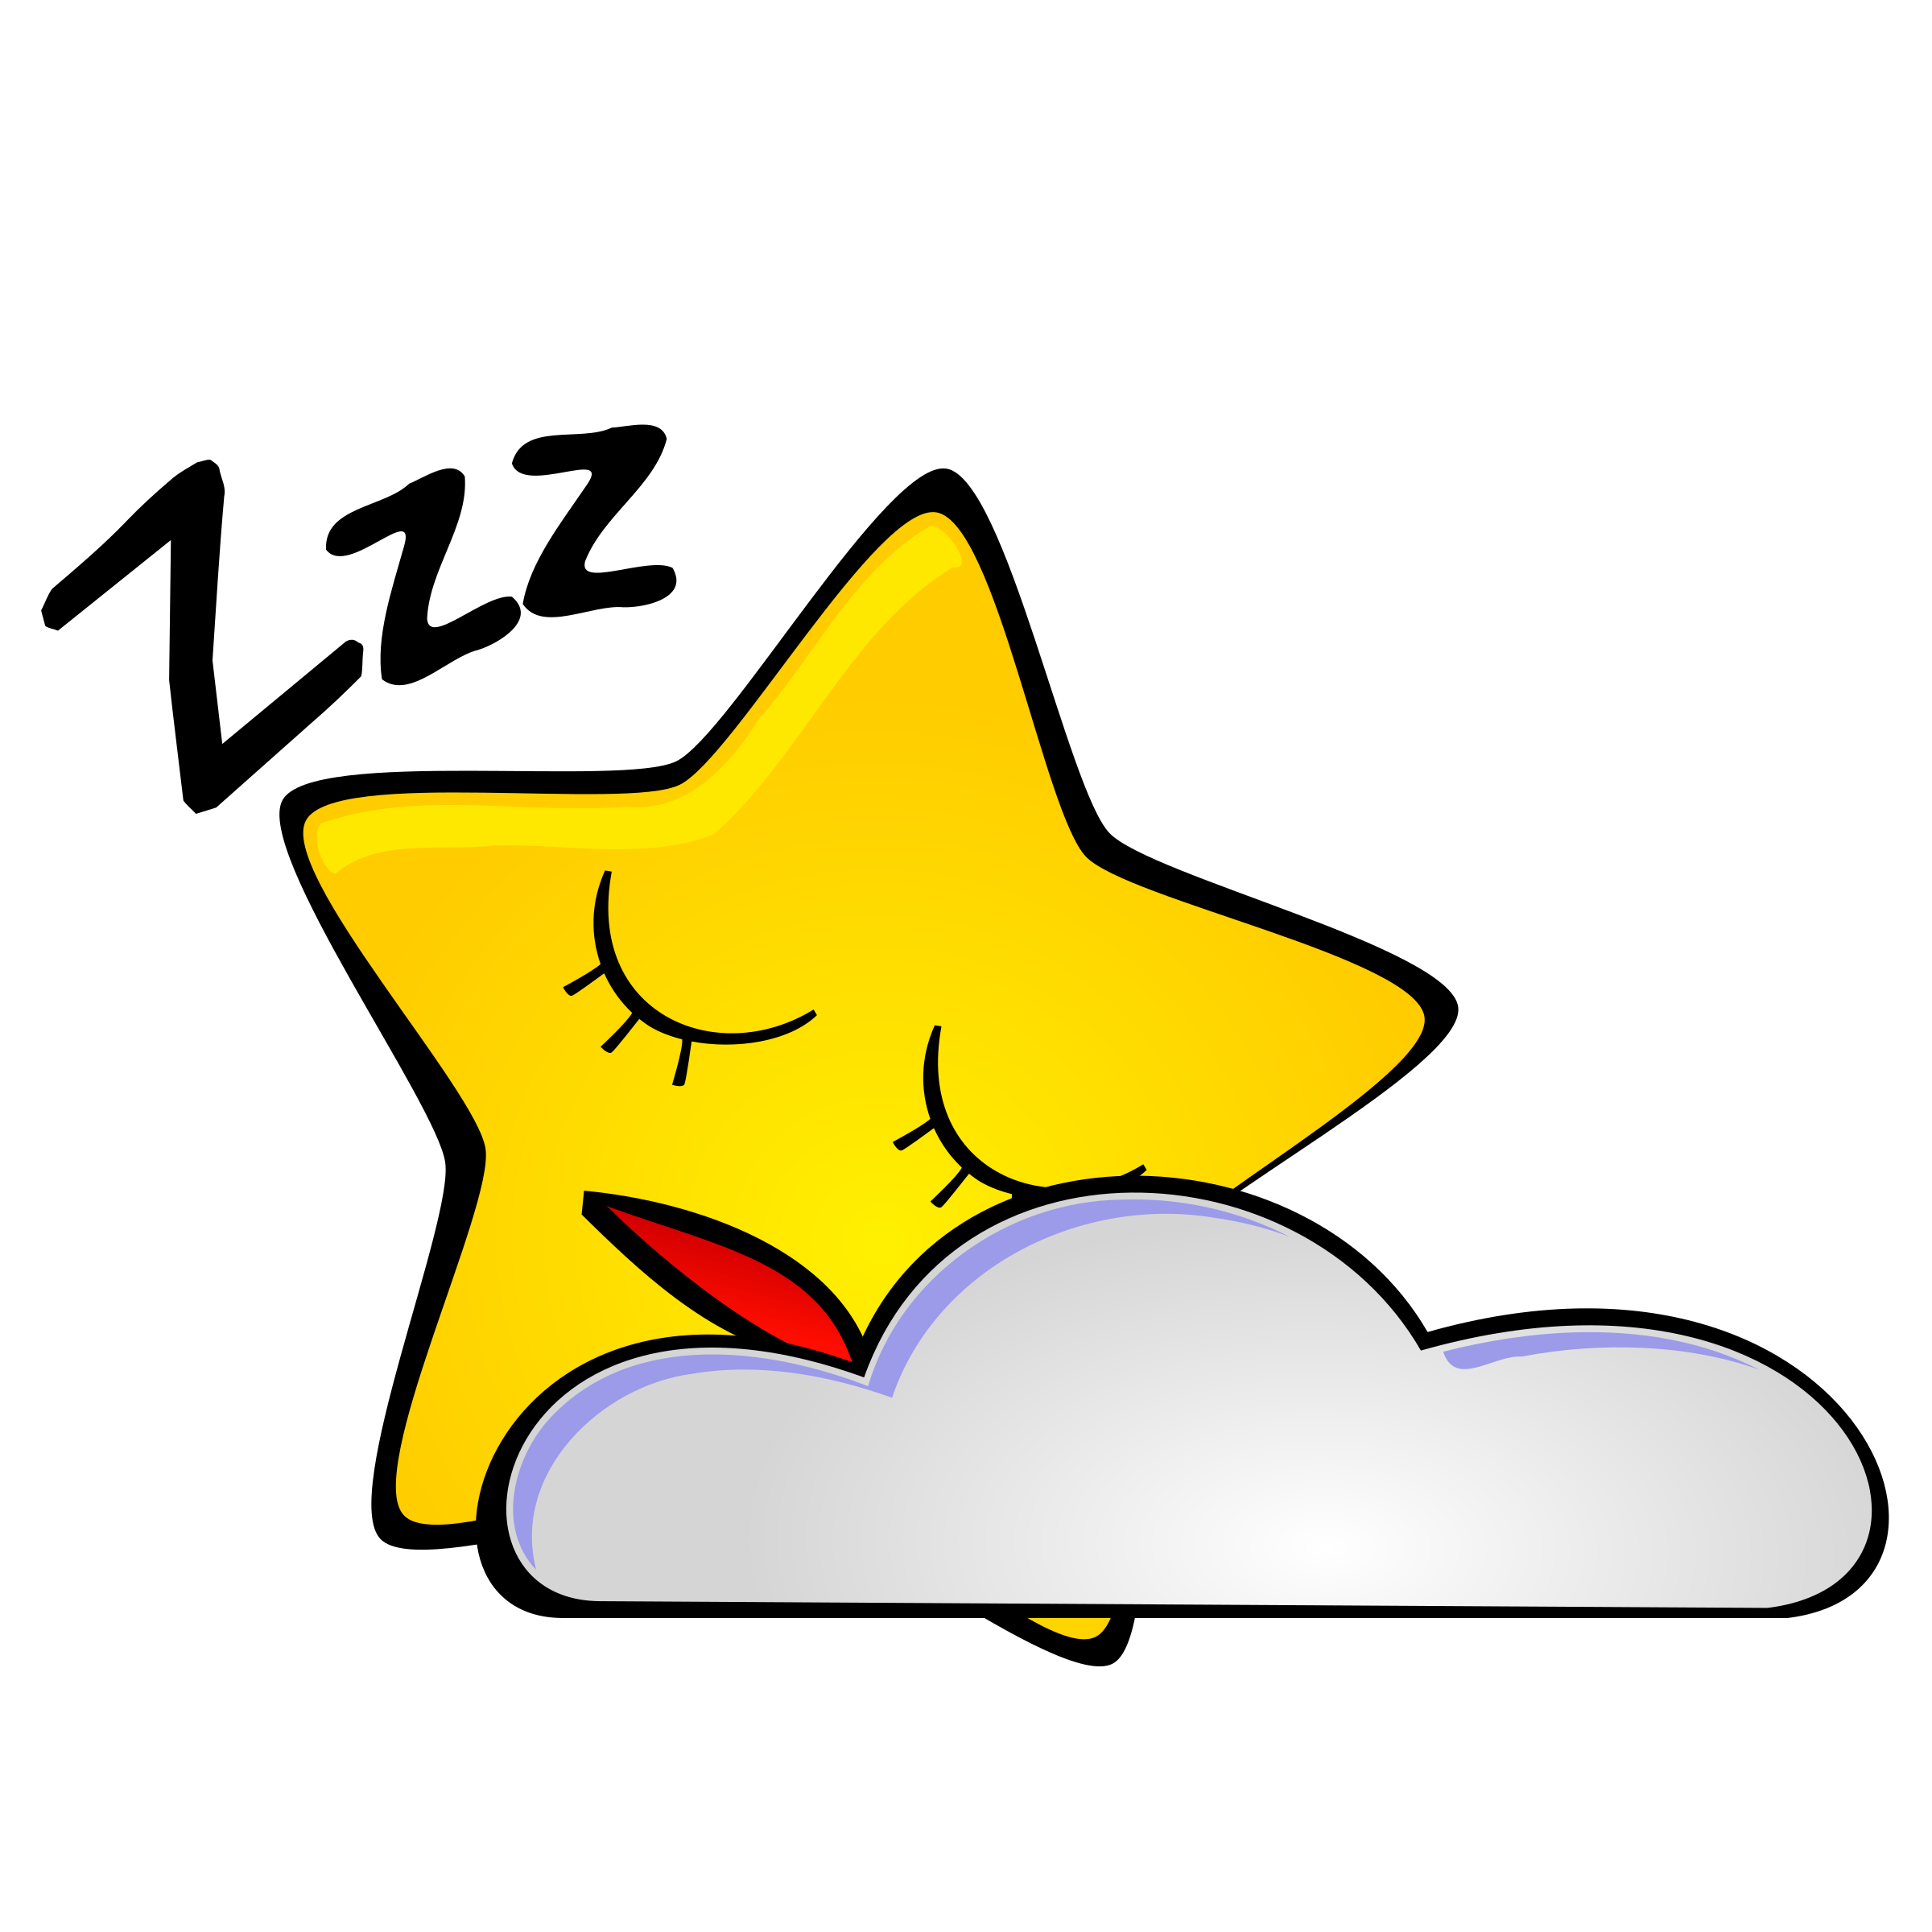 Slanted star clipart clipart royalty free library Night Fury Drawing at GetDrawings.com | Free for personal use Night ... clipart royalty free library